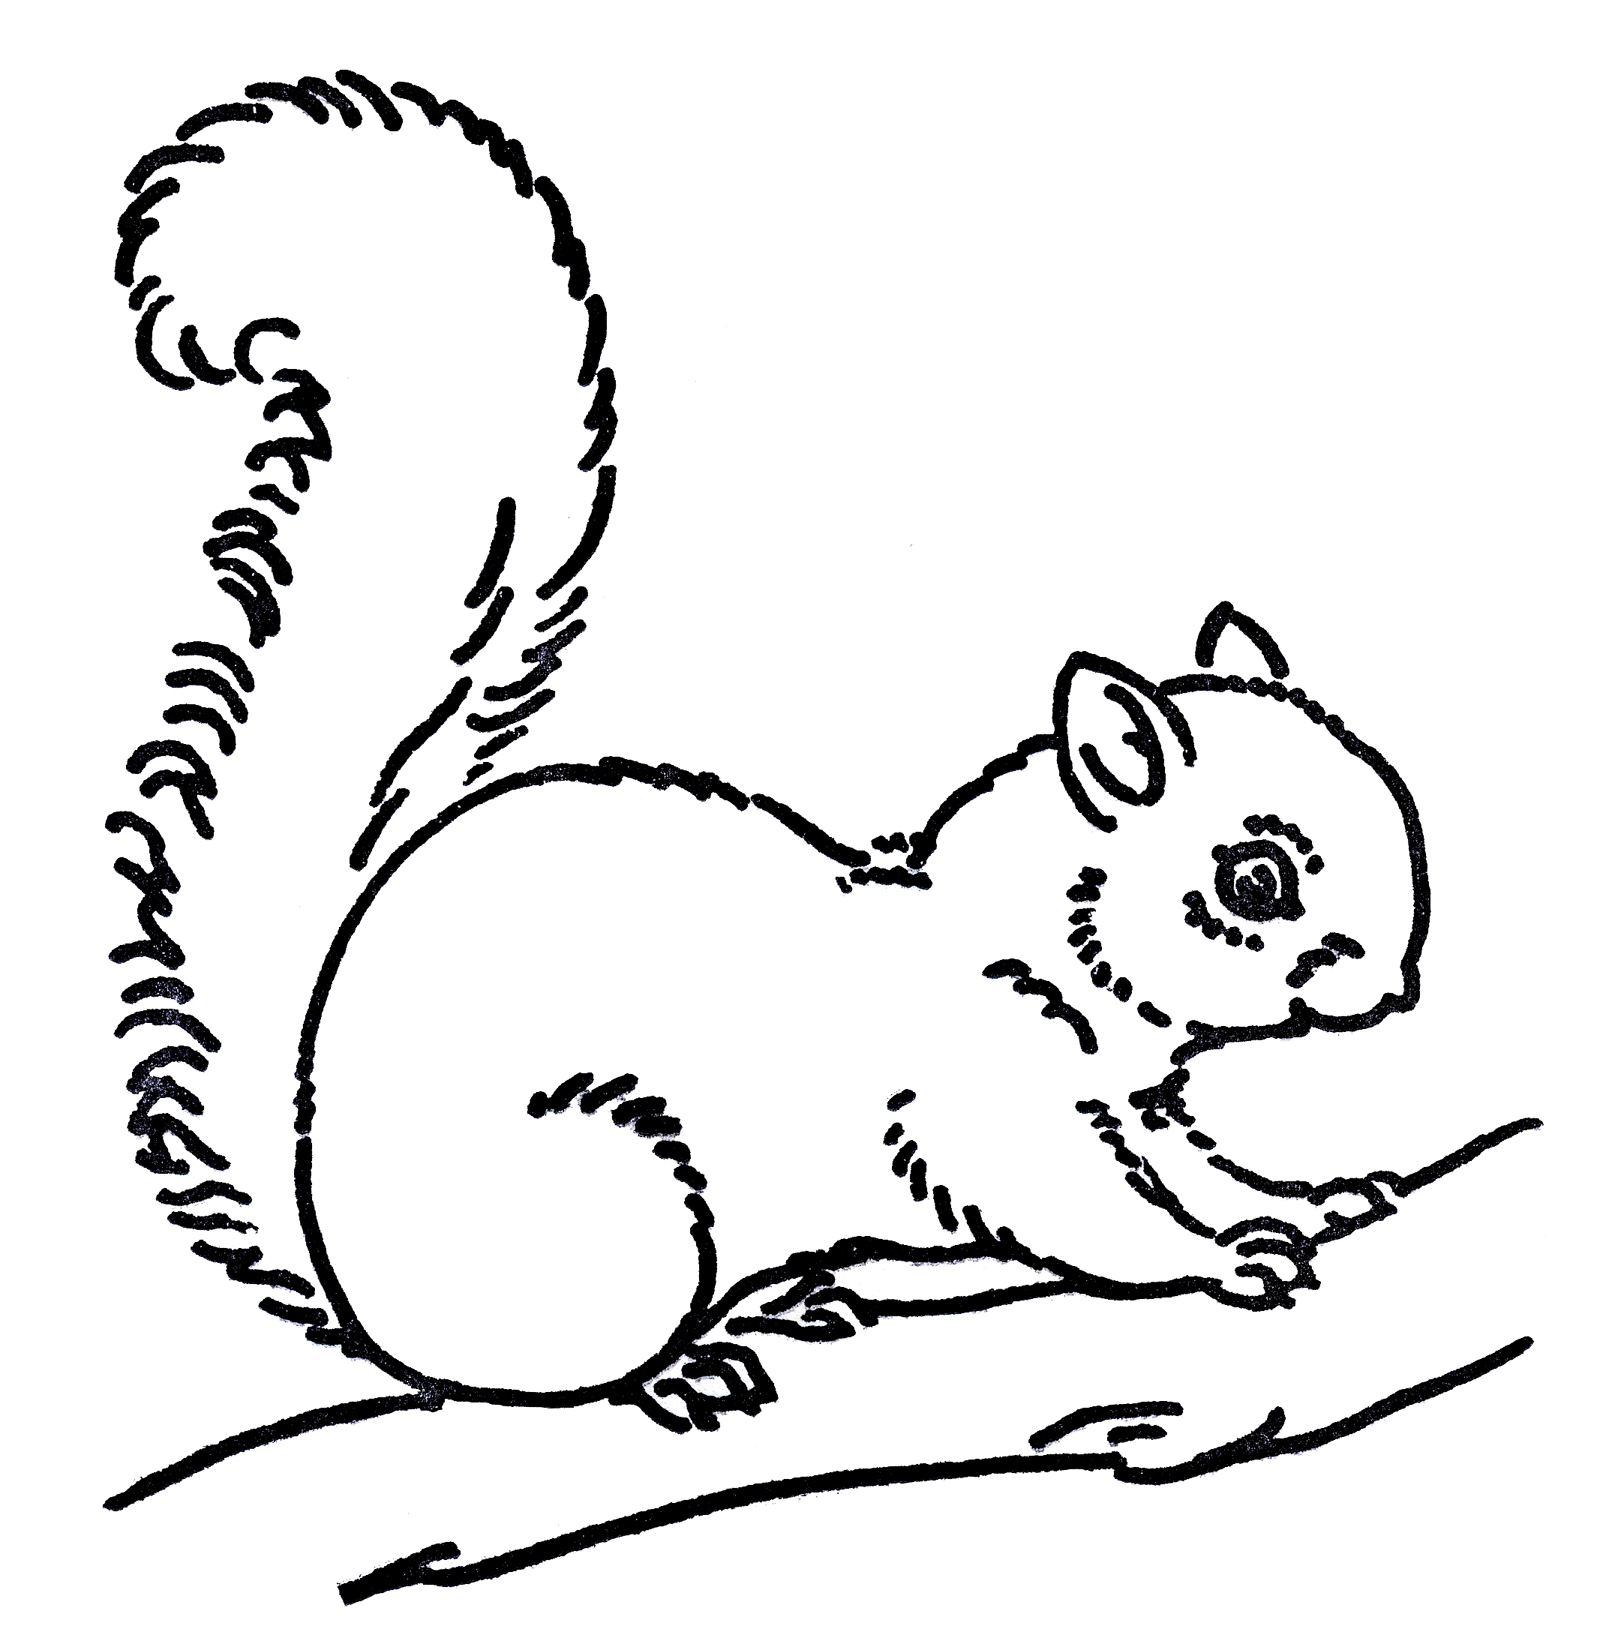 Line Art On Photo : Free line art images squirrel drawings the graphics fairy